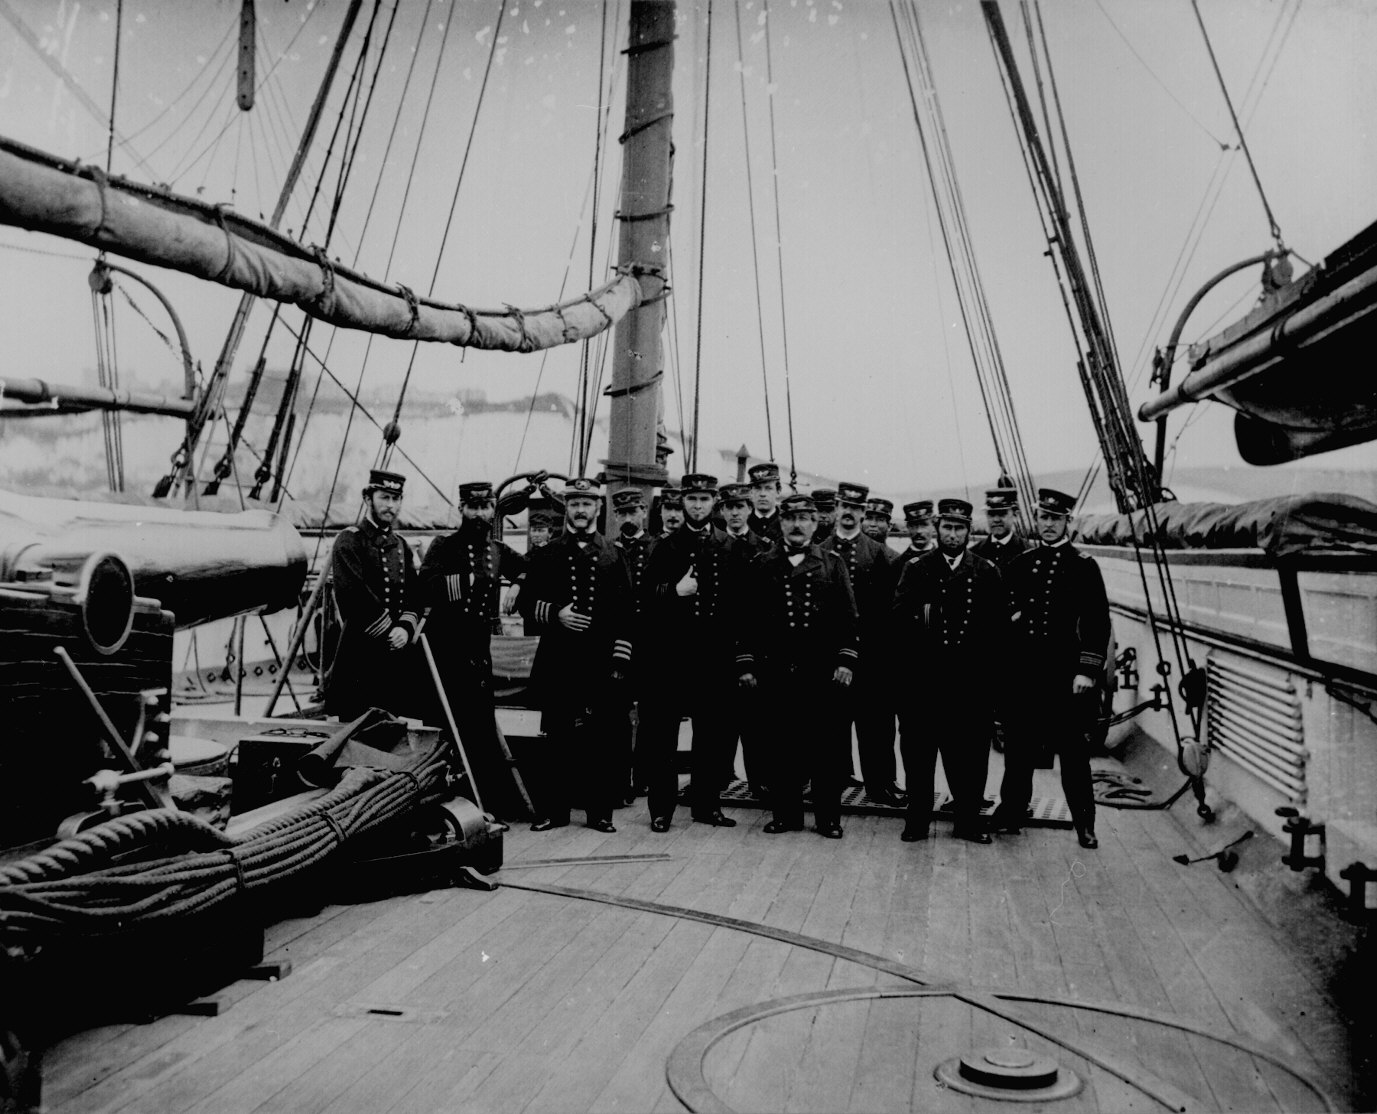 Capt. John A. Winslow (3d from left) and officers on board the U.S.S. Kearsarge after sinking the C.S.S. Alabama, 1864